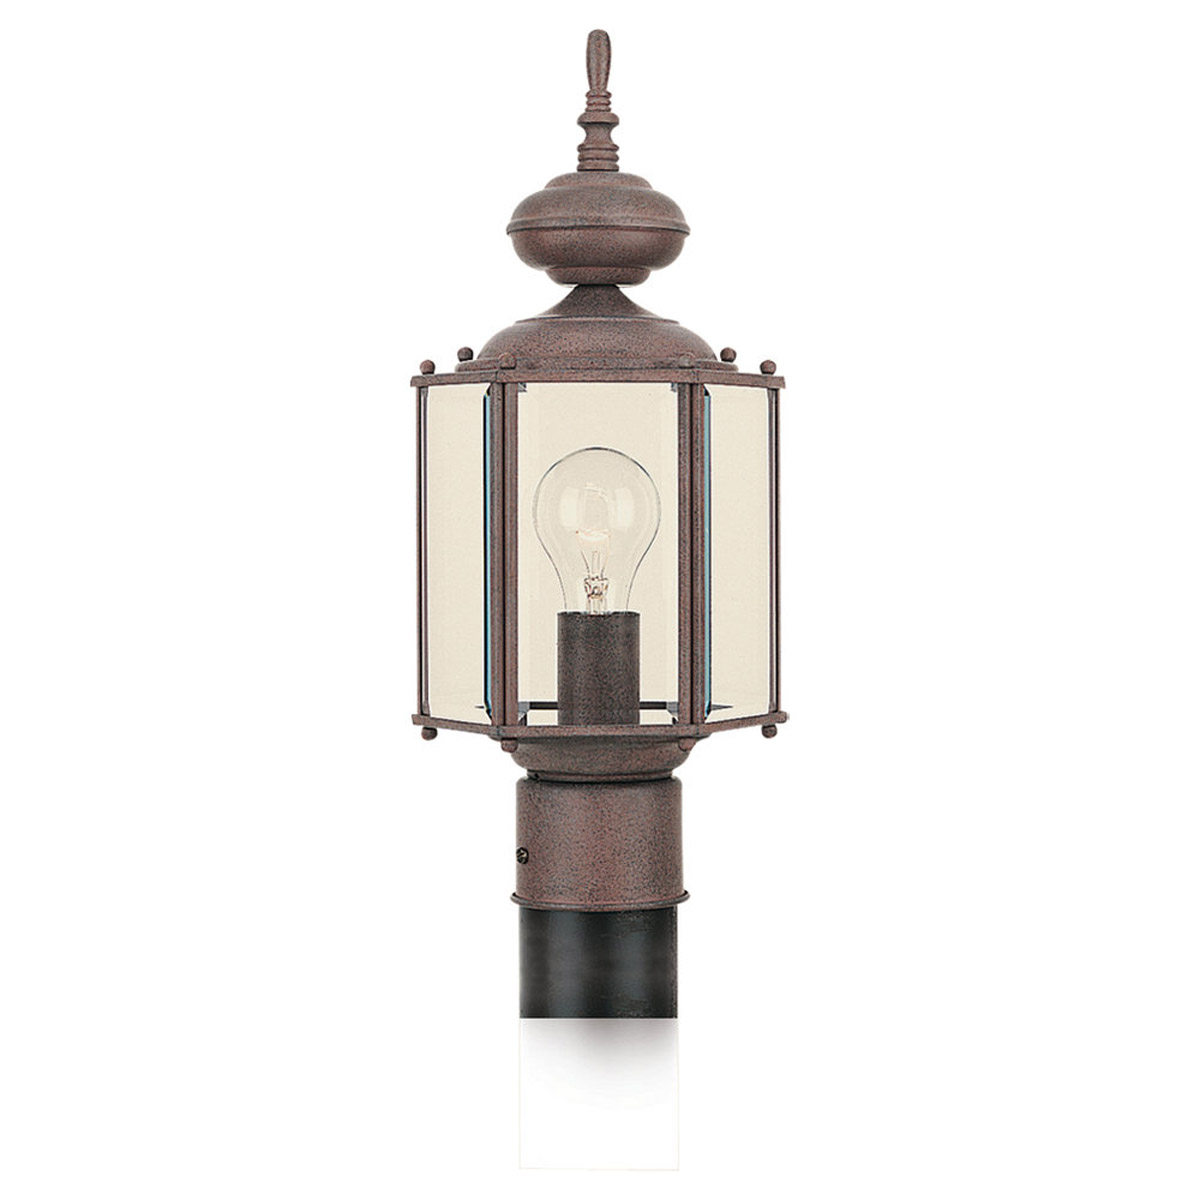 Sea Gull Lighting Classico 1 Light Outdoor Post Lantern in Sienna 8209-26 photo